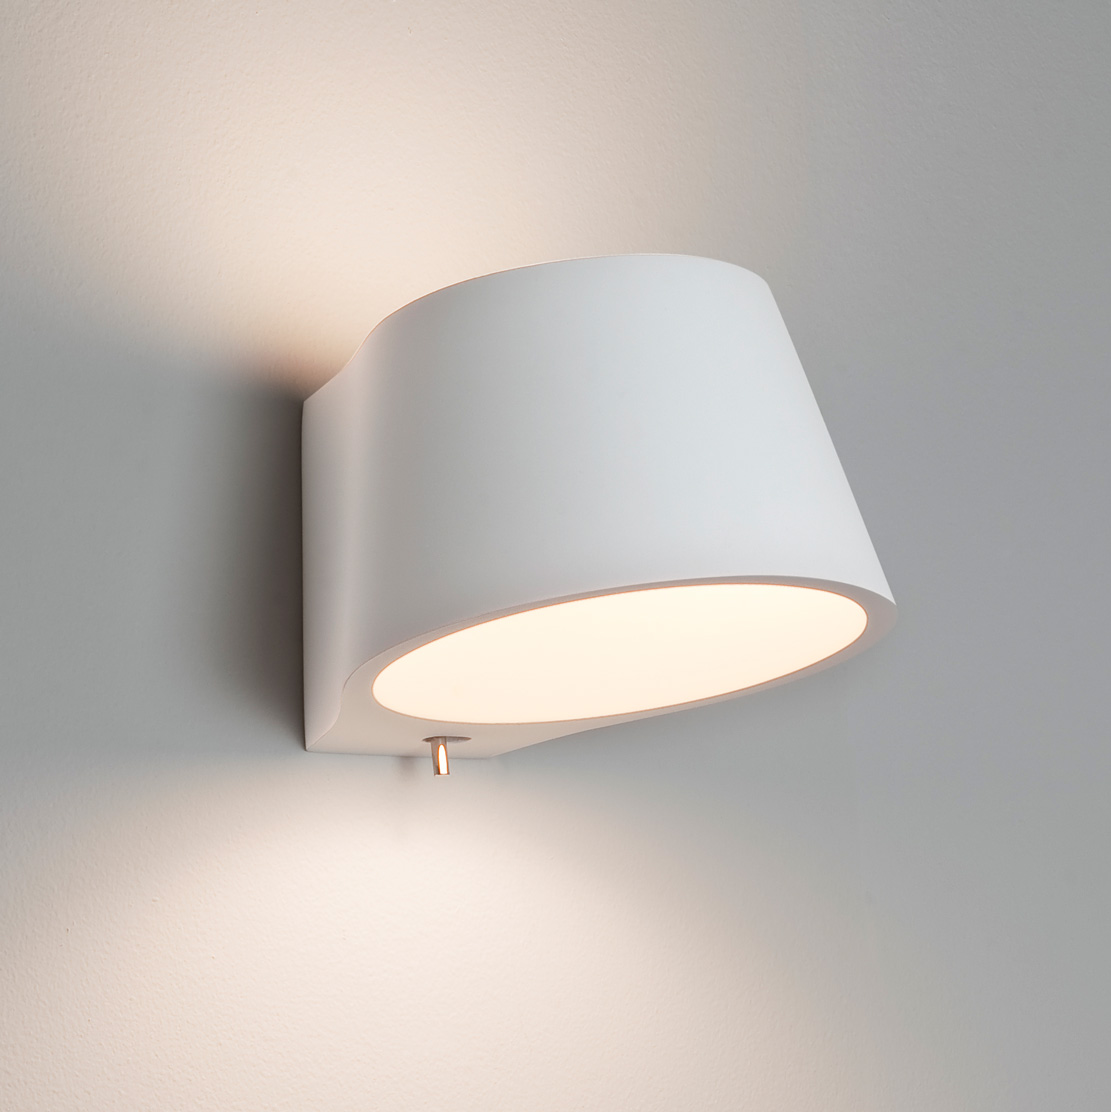 Switched Plaster Wall Lights : Astro Koza 0695 dimmable switched wall light 1x60W E14 lamp IP20 white plaster Liminaires